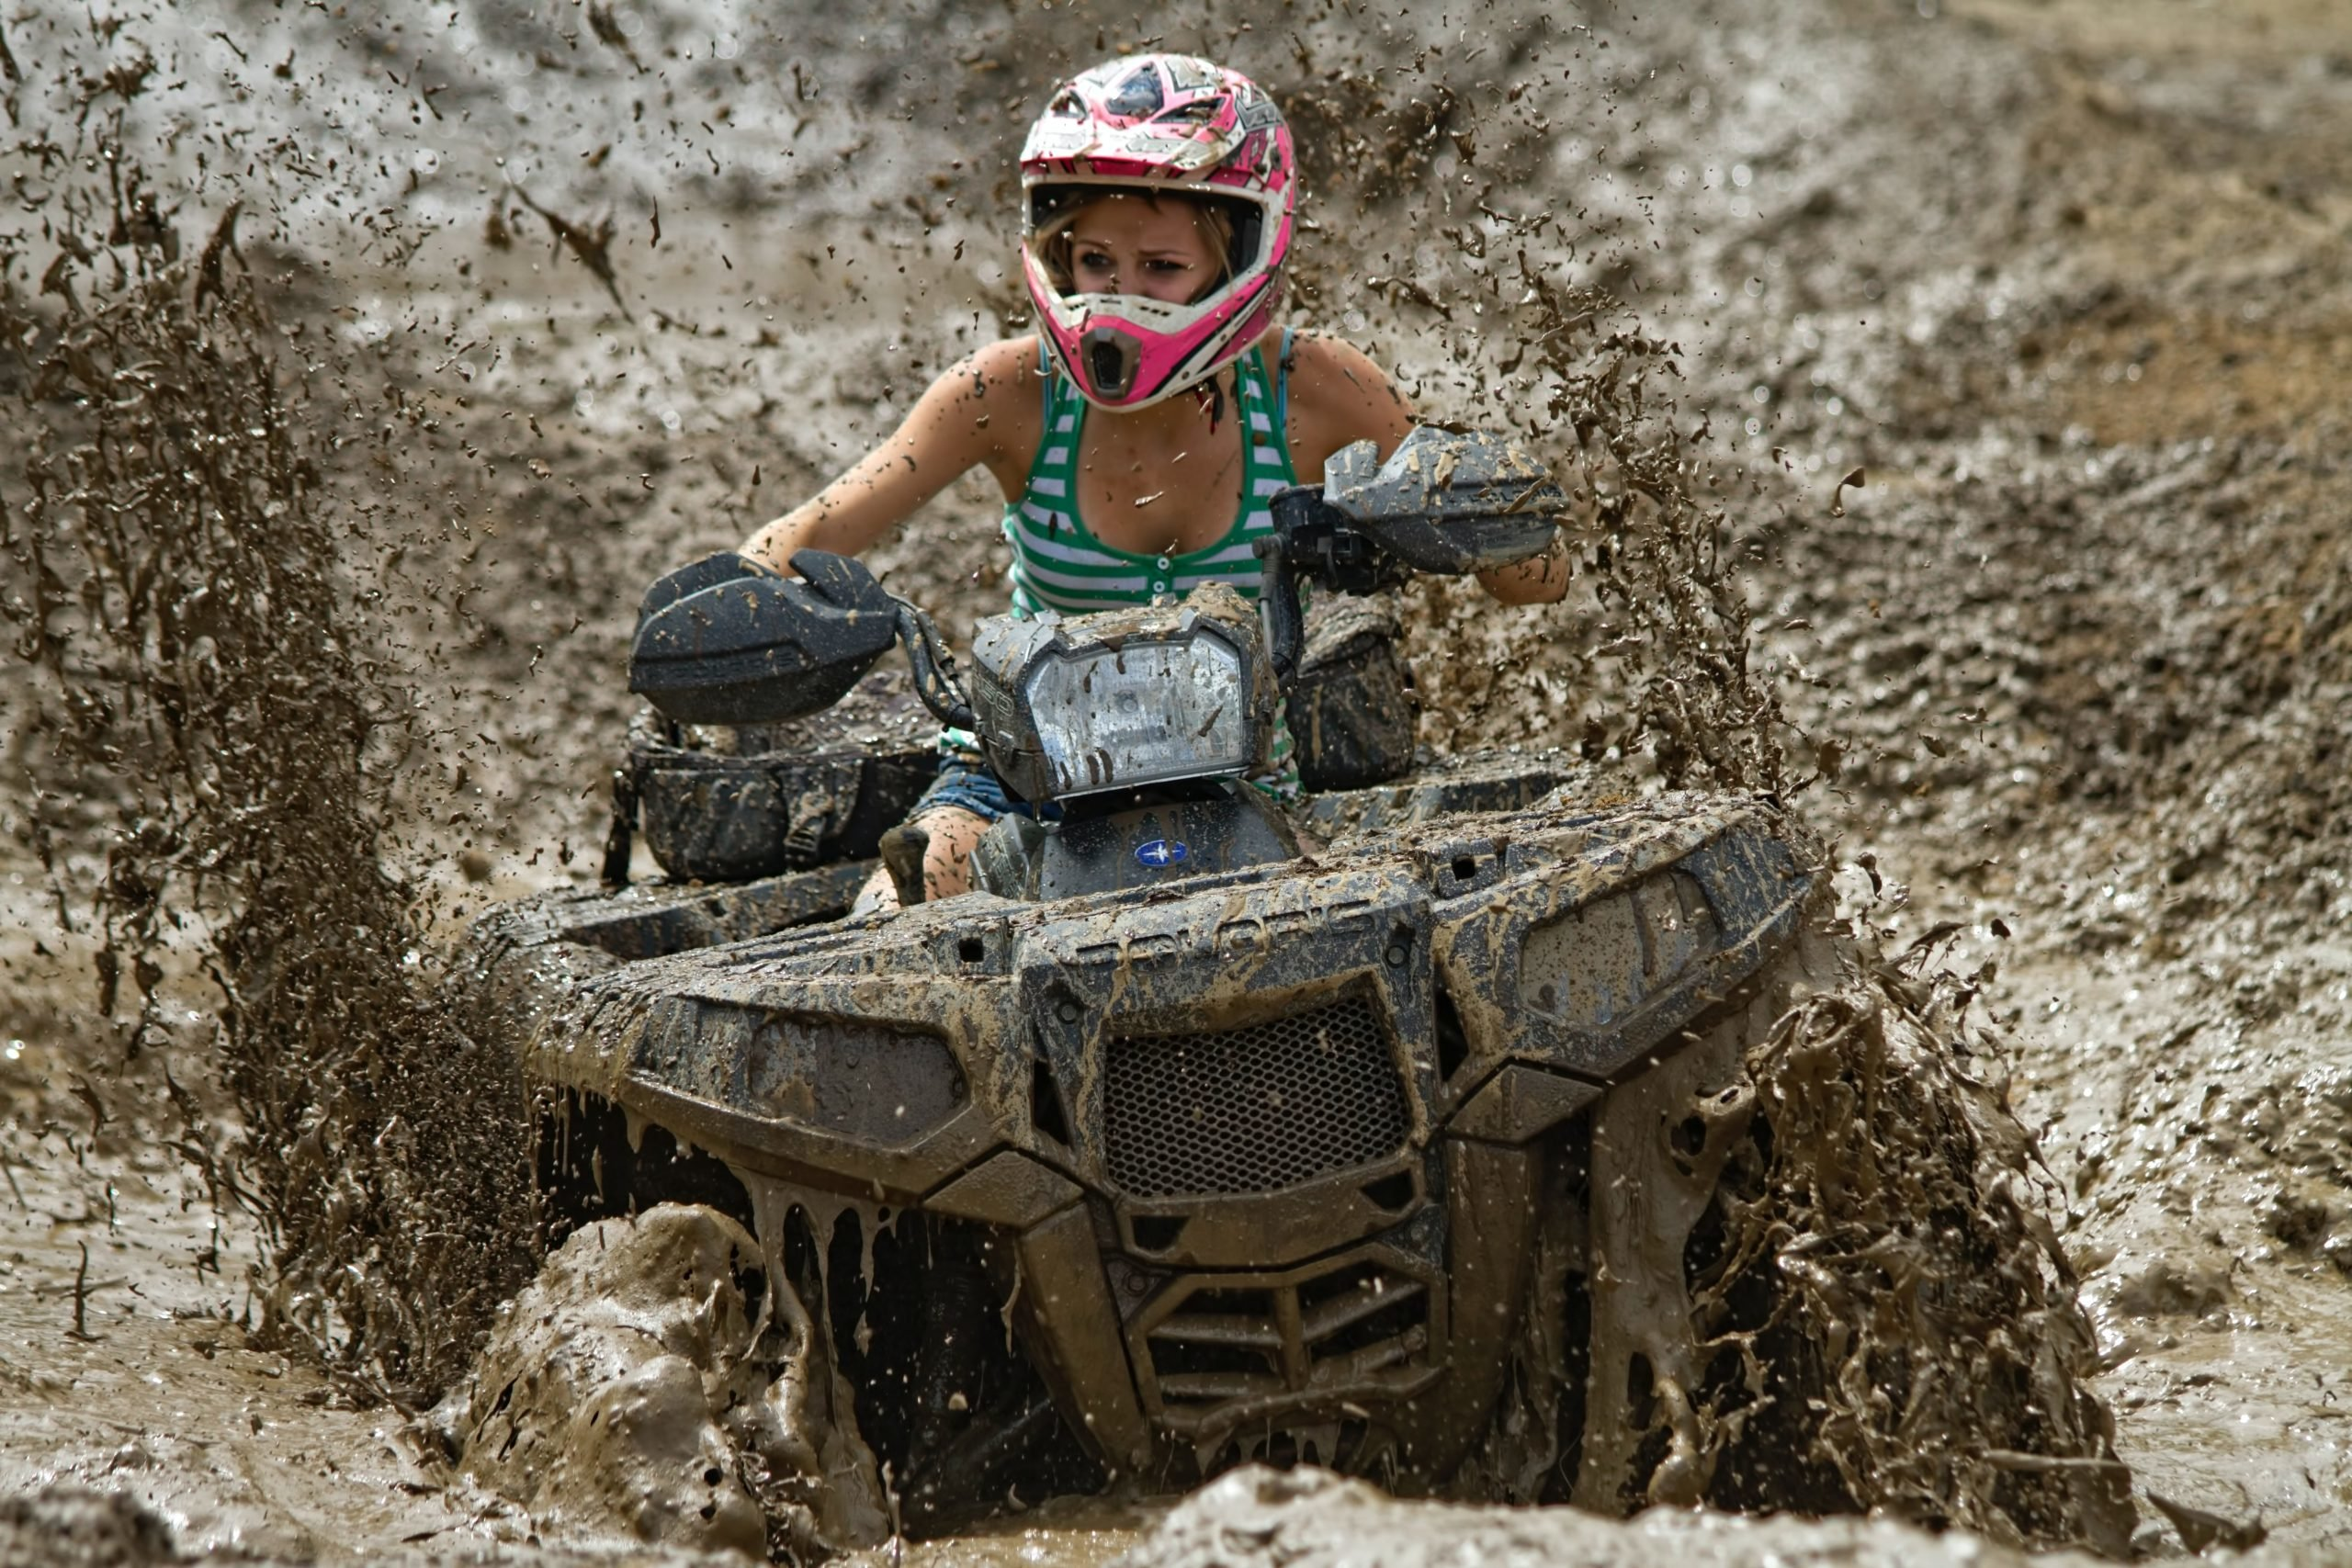 photo of woman on atv